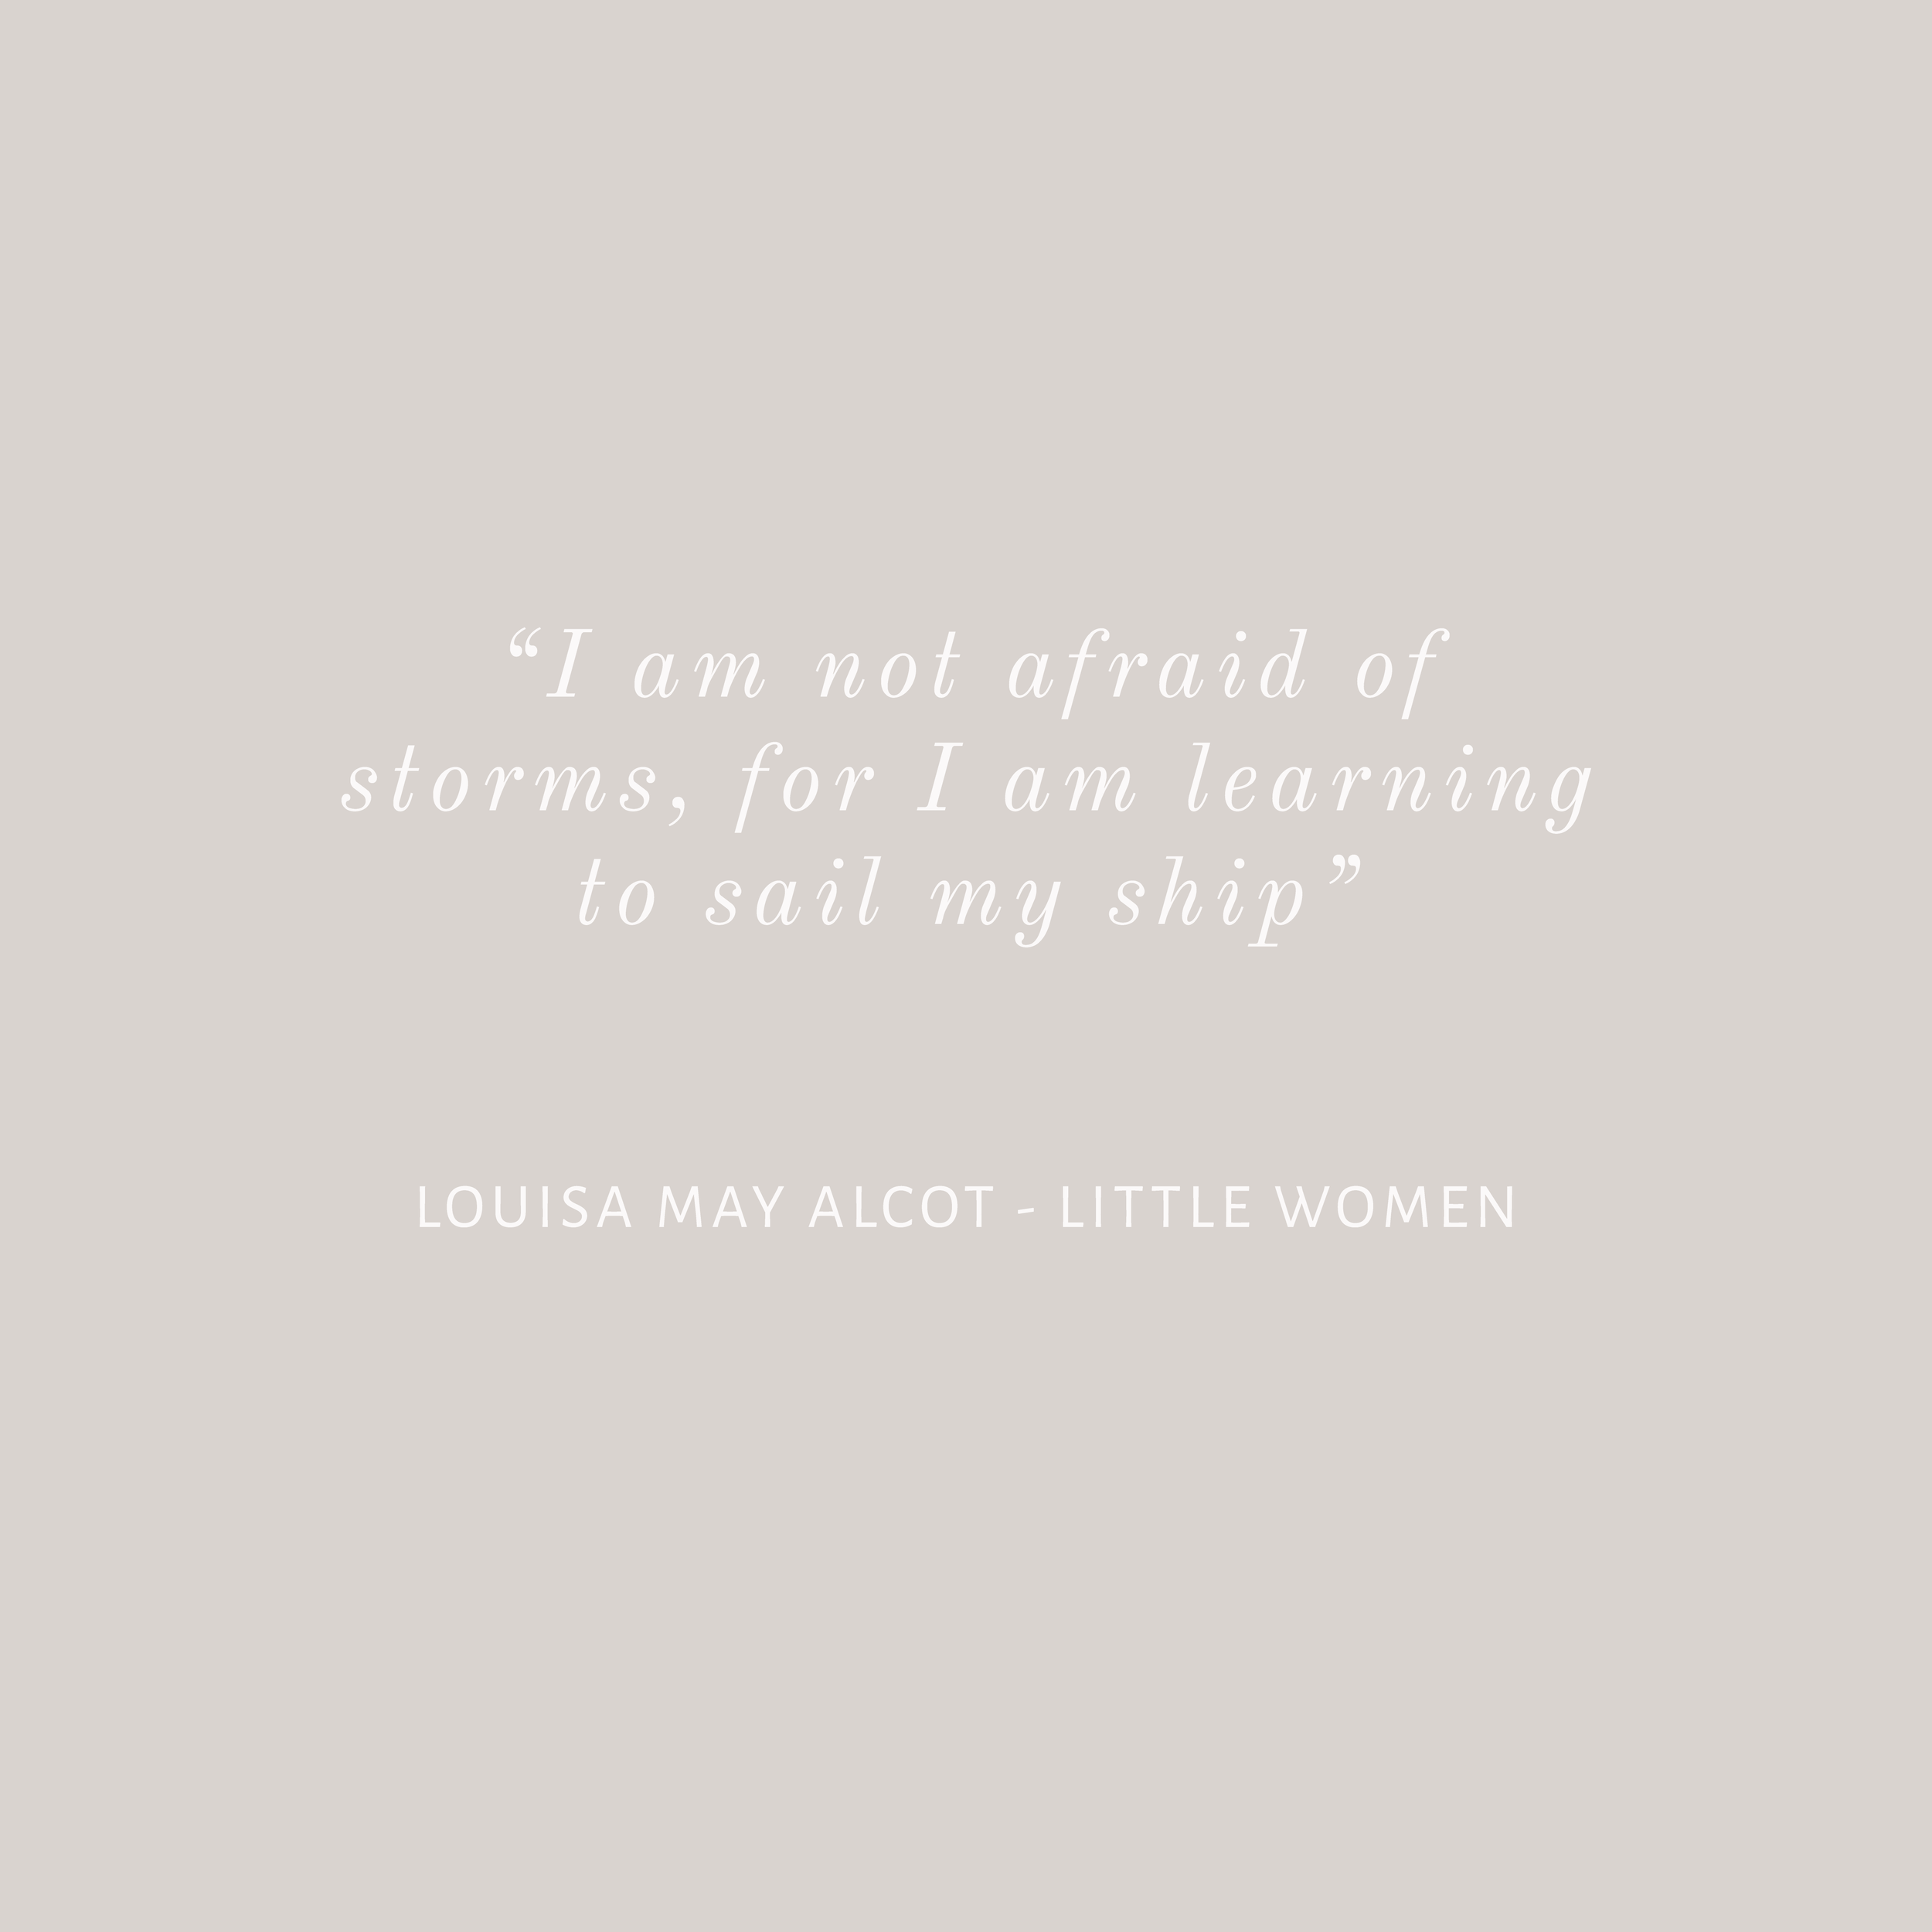 Little Women quote Bea & Bloom Creative Design Studio